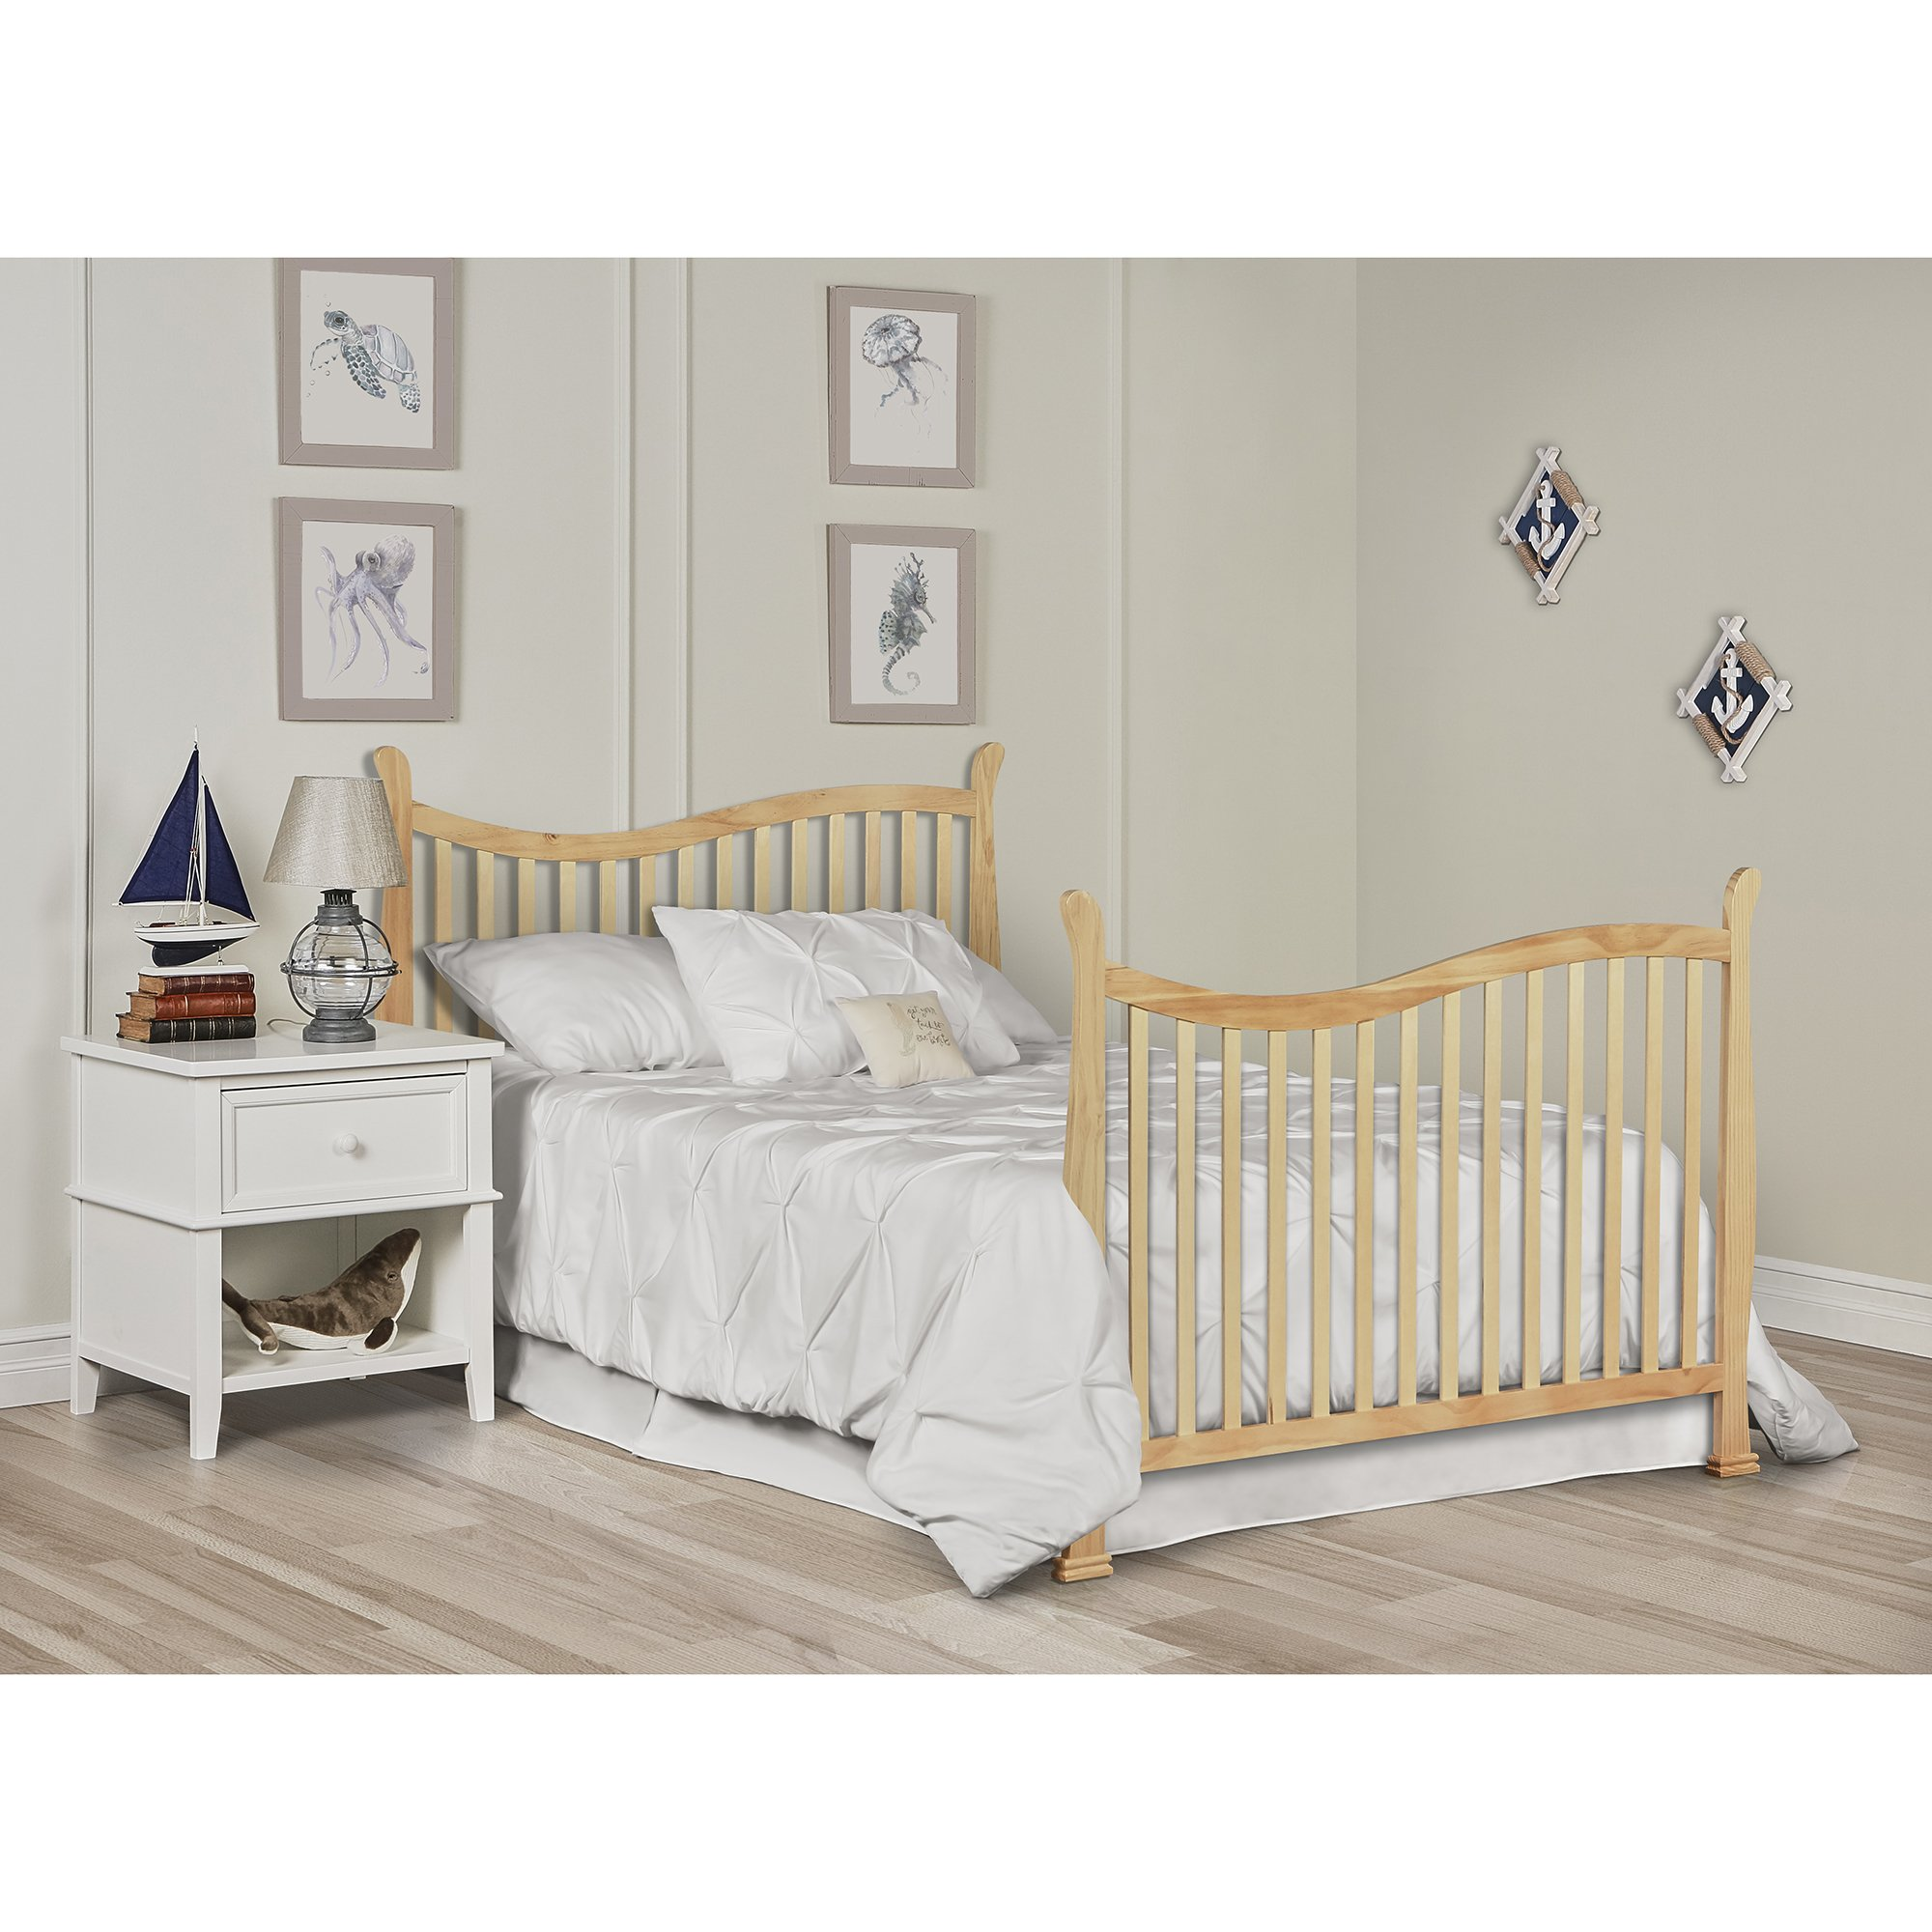 Dream On Me Violet 7 in 1 Convertible Life Style Crib, Natural by Dream On Me (Image #6)